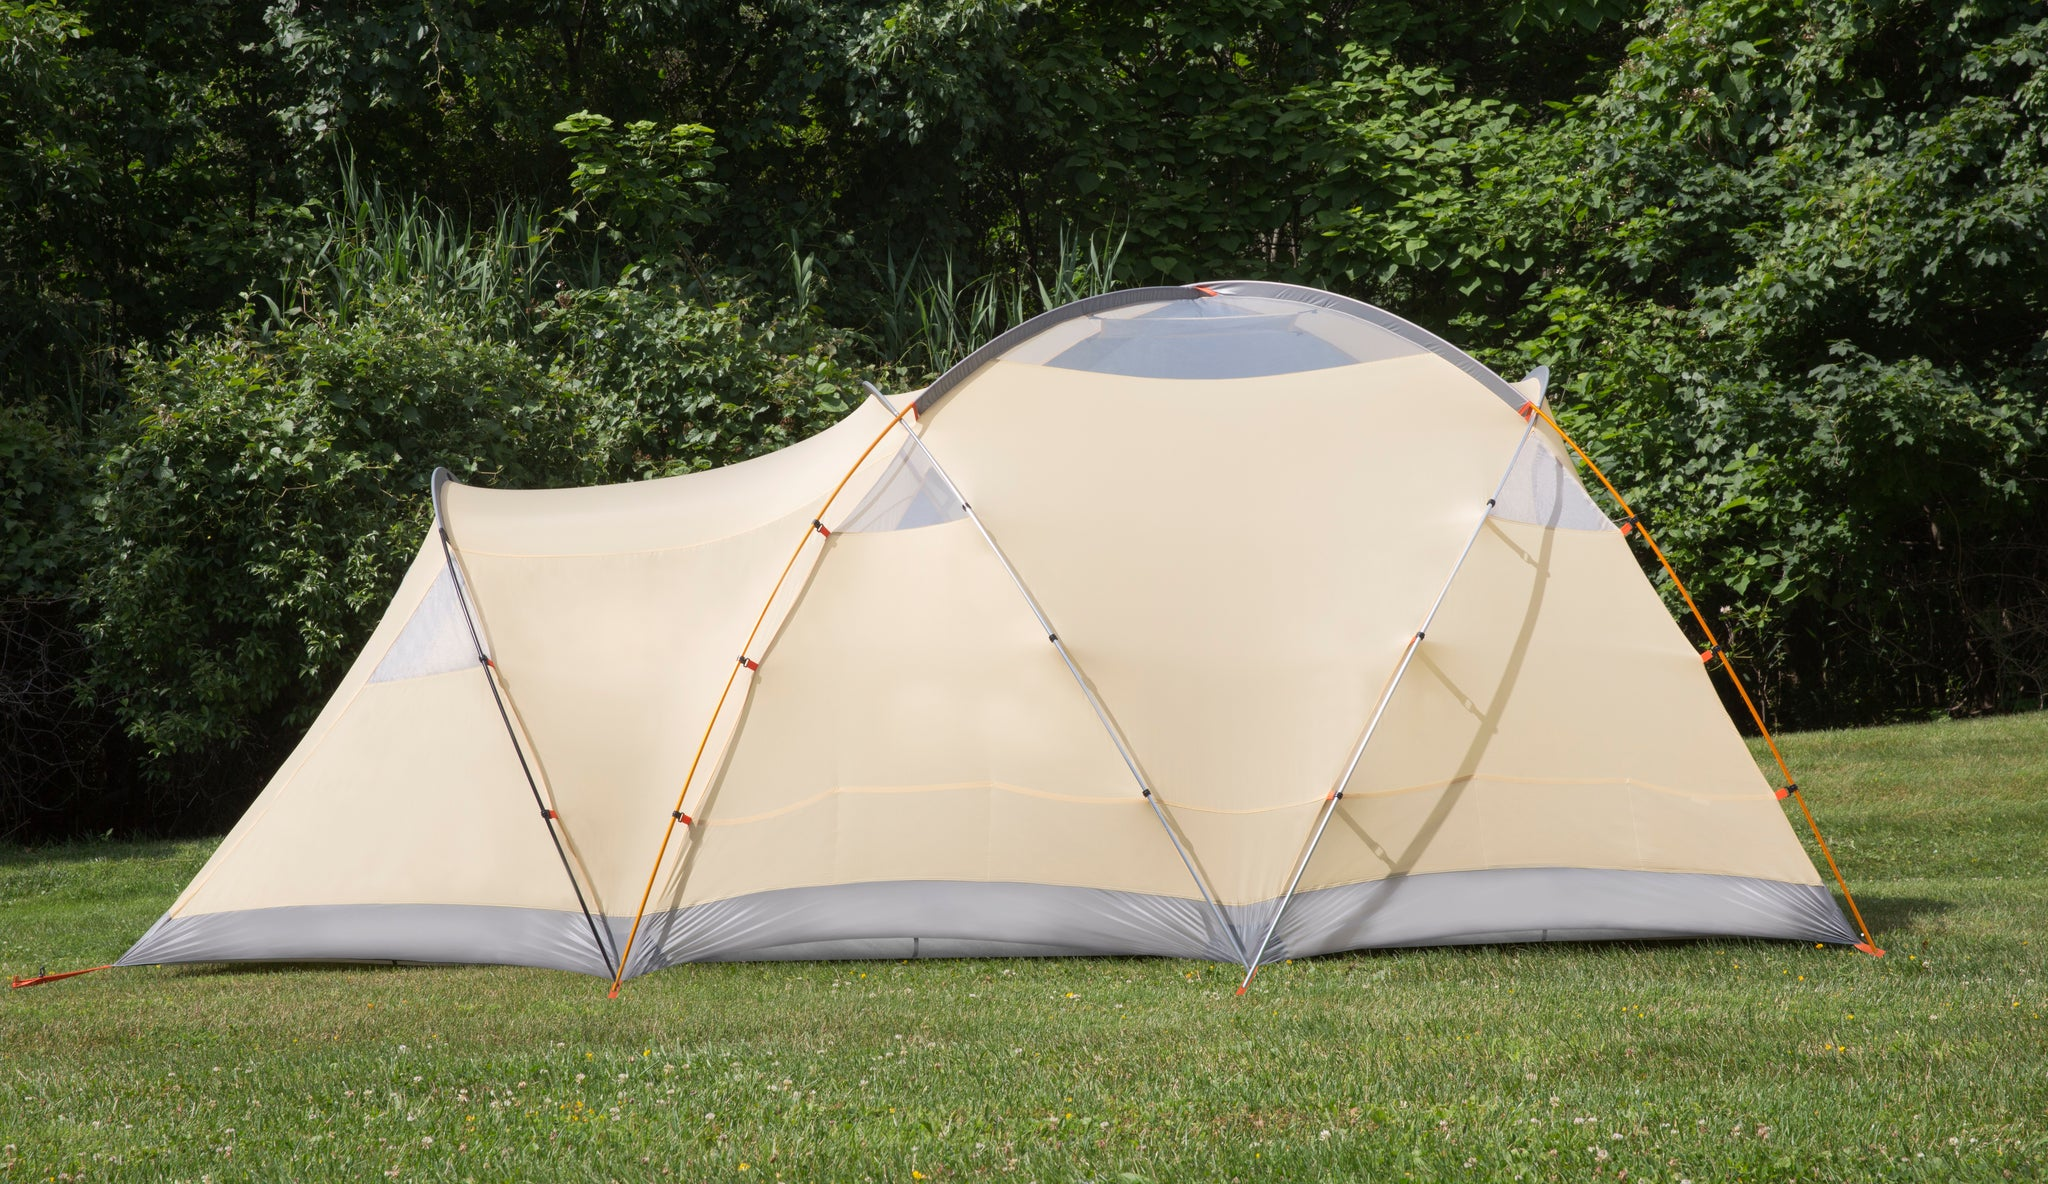 ... 8-Person Compact Backcountry Tent ... & 8-Person Compact Backcountry Tent u2013 EXIO Gear